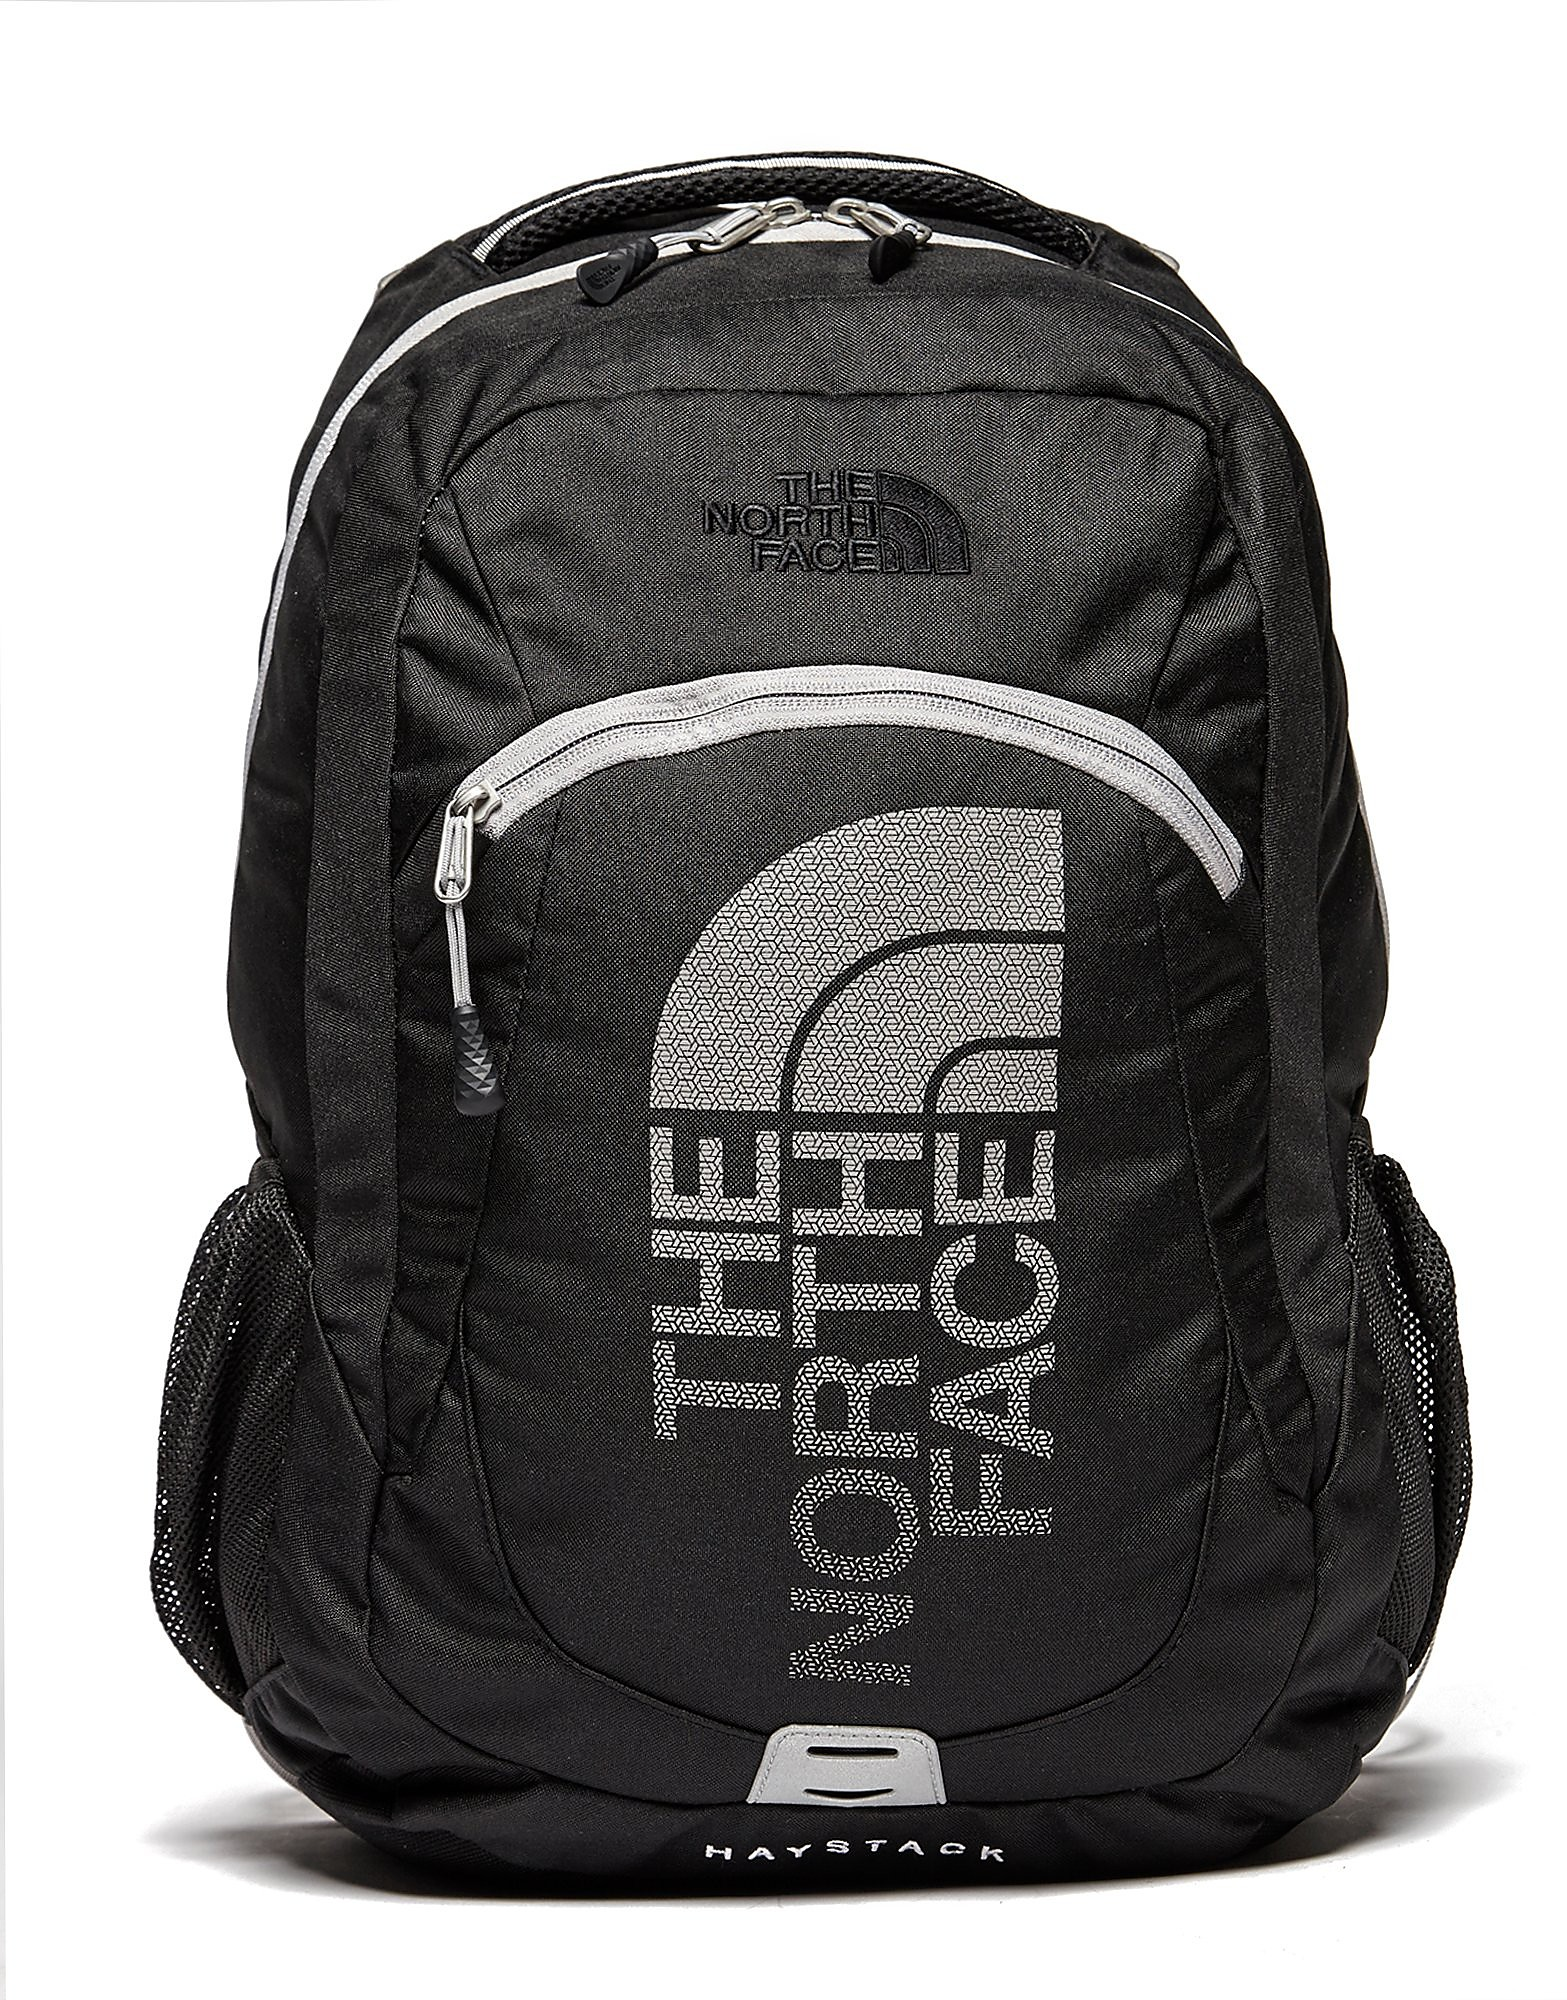 The North Face Haystack Rucksack